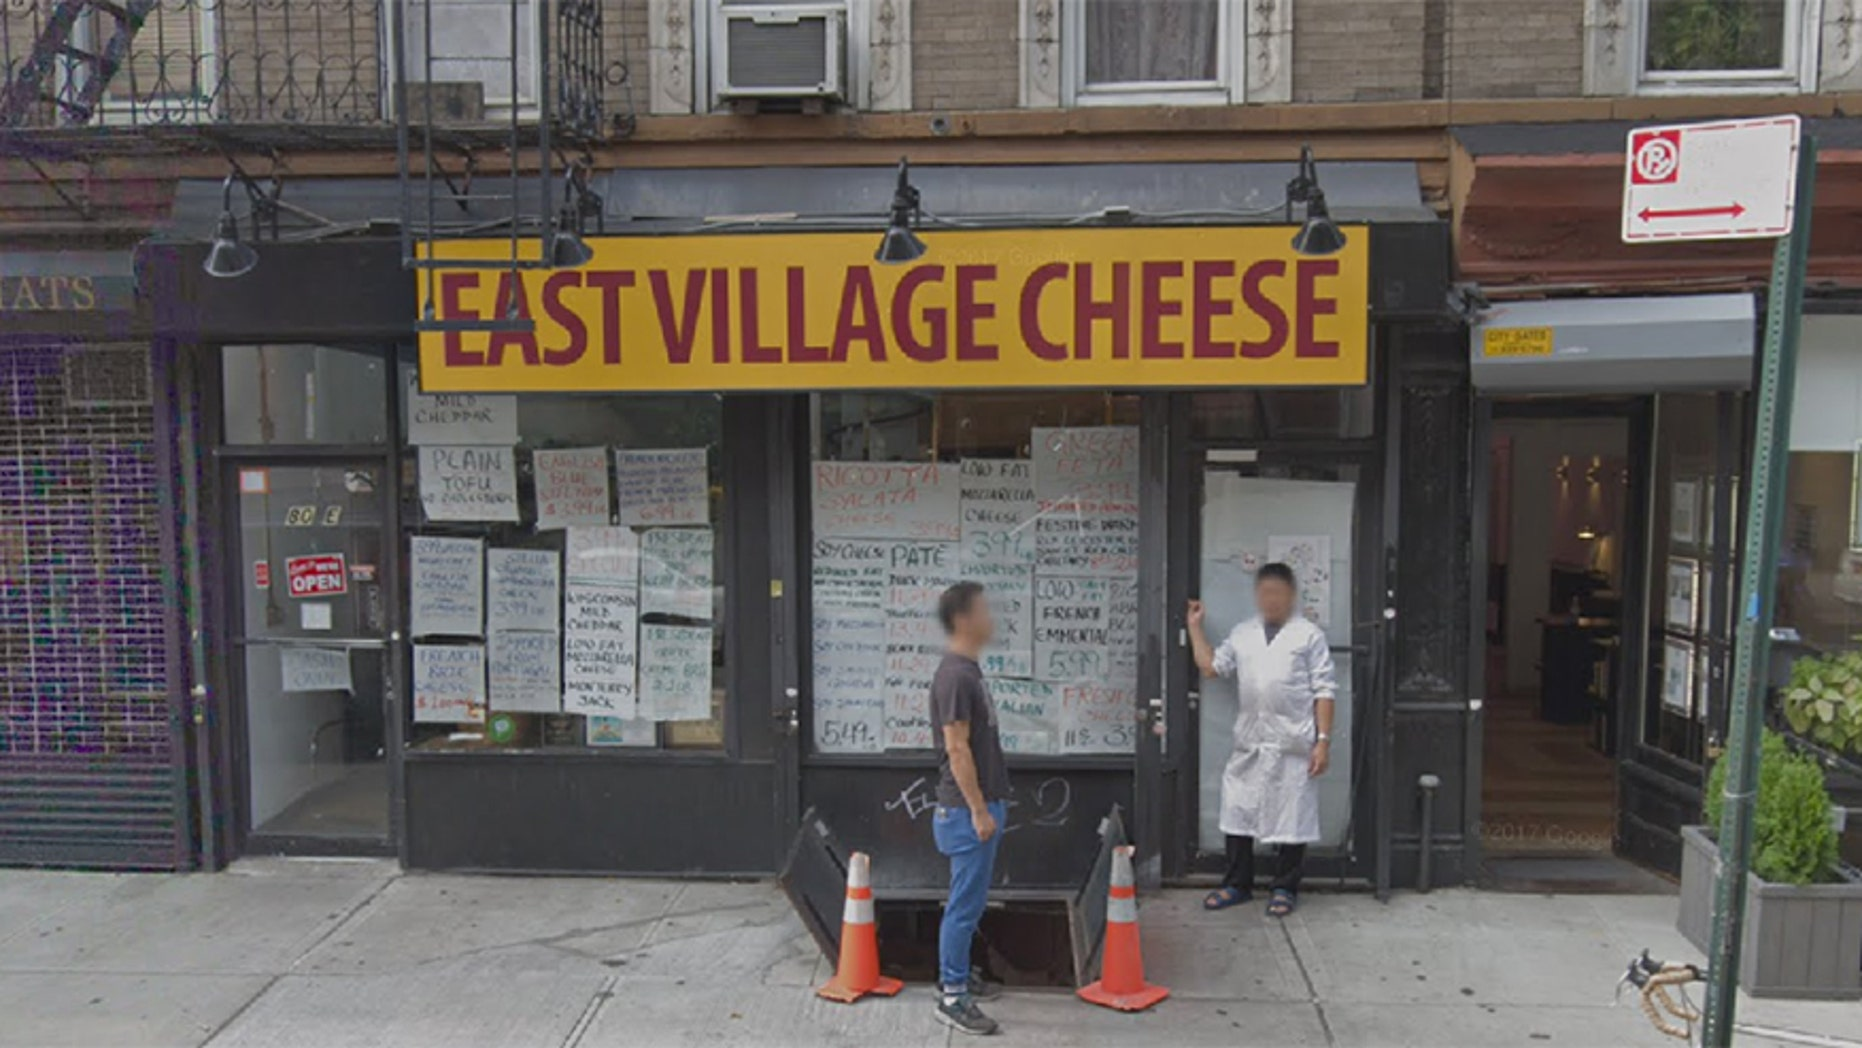 Neighbors say the East Village Cheese shop in New York City is starting to smell after being closed for more than two weeks.